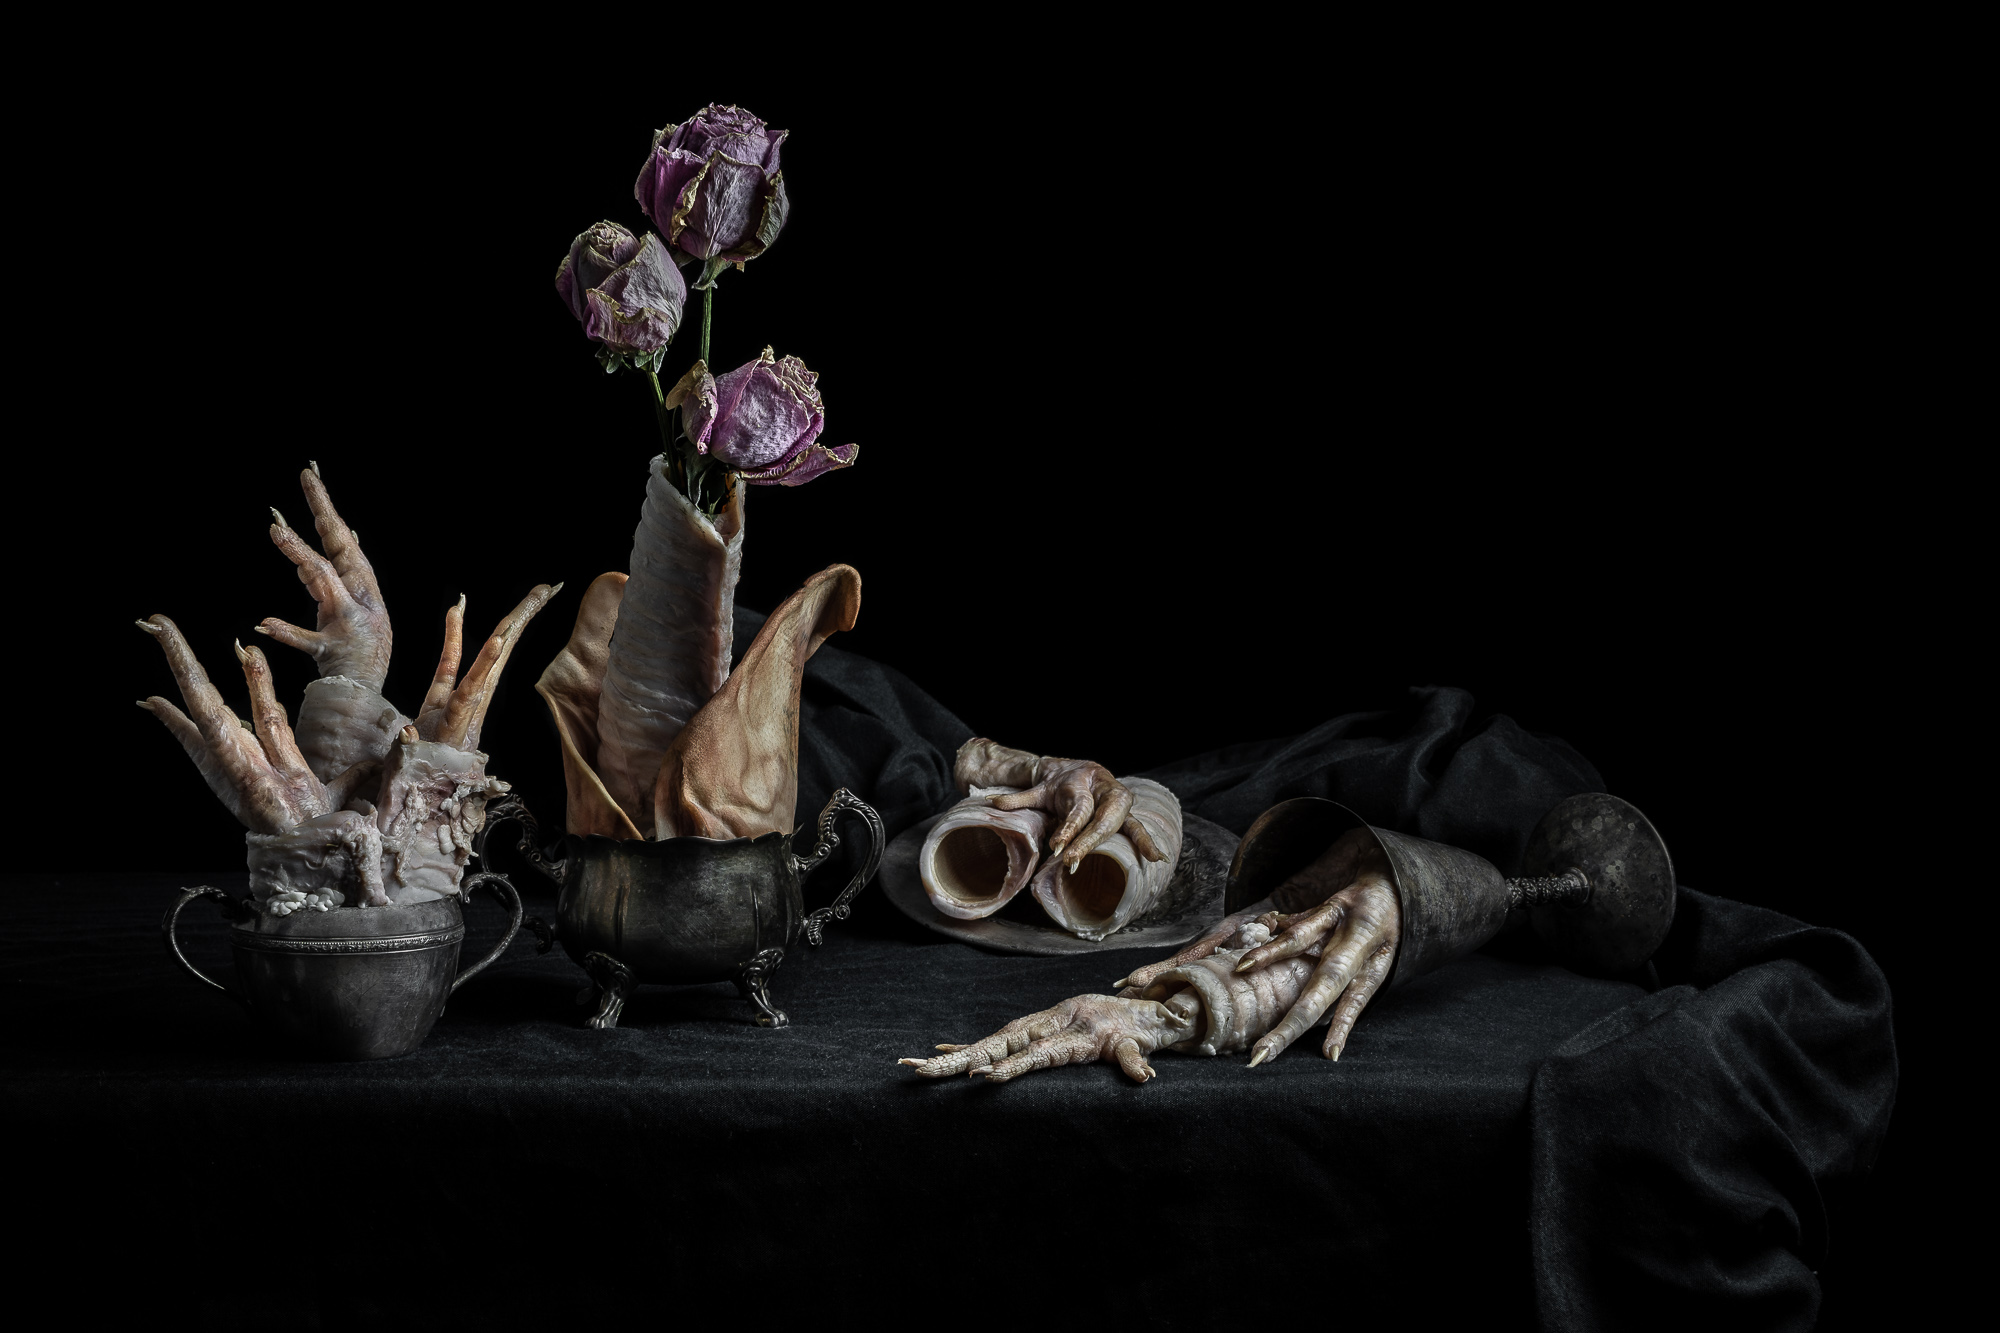 Floral Arrangement with Chicken Feet, Cow Trachea, and Pig Ears